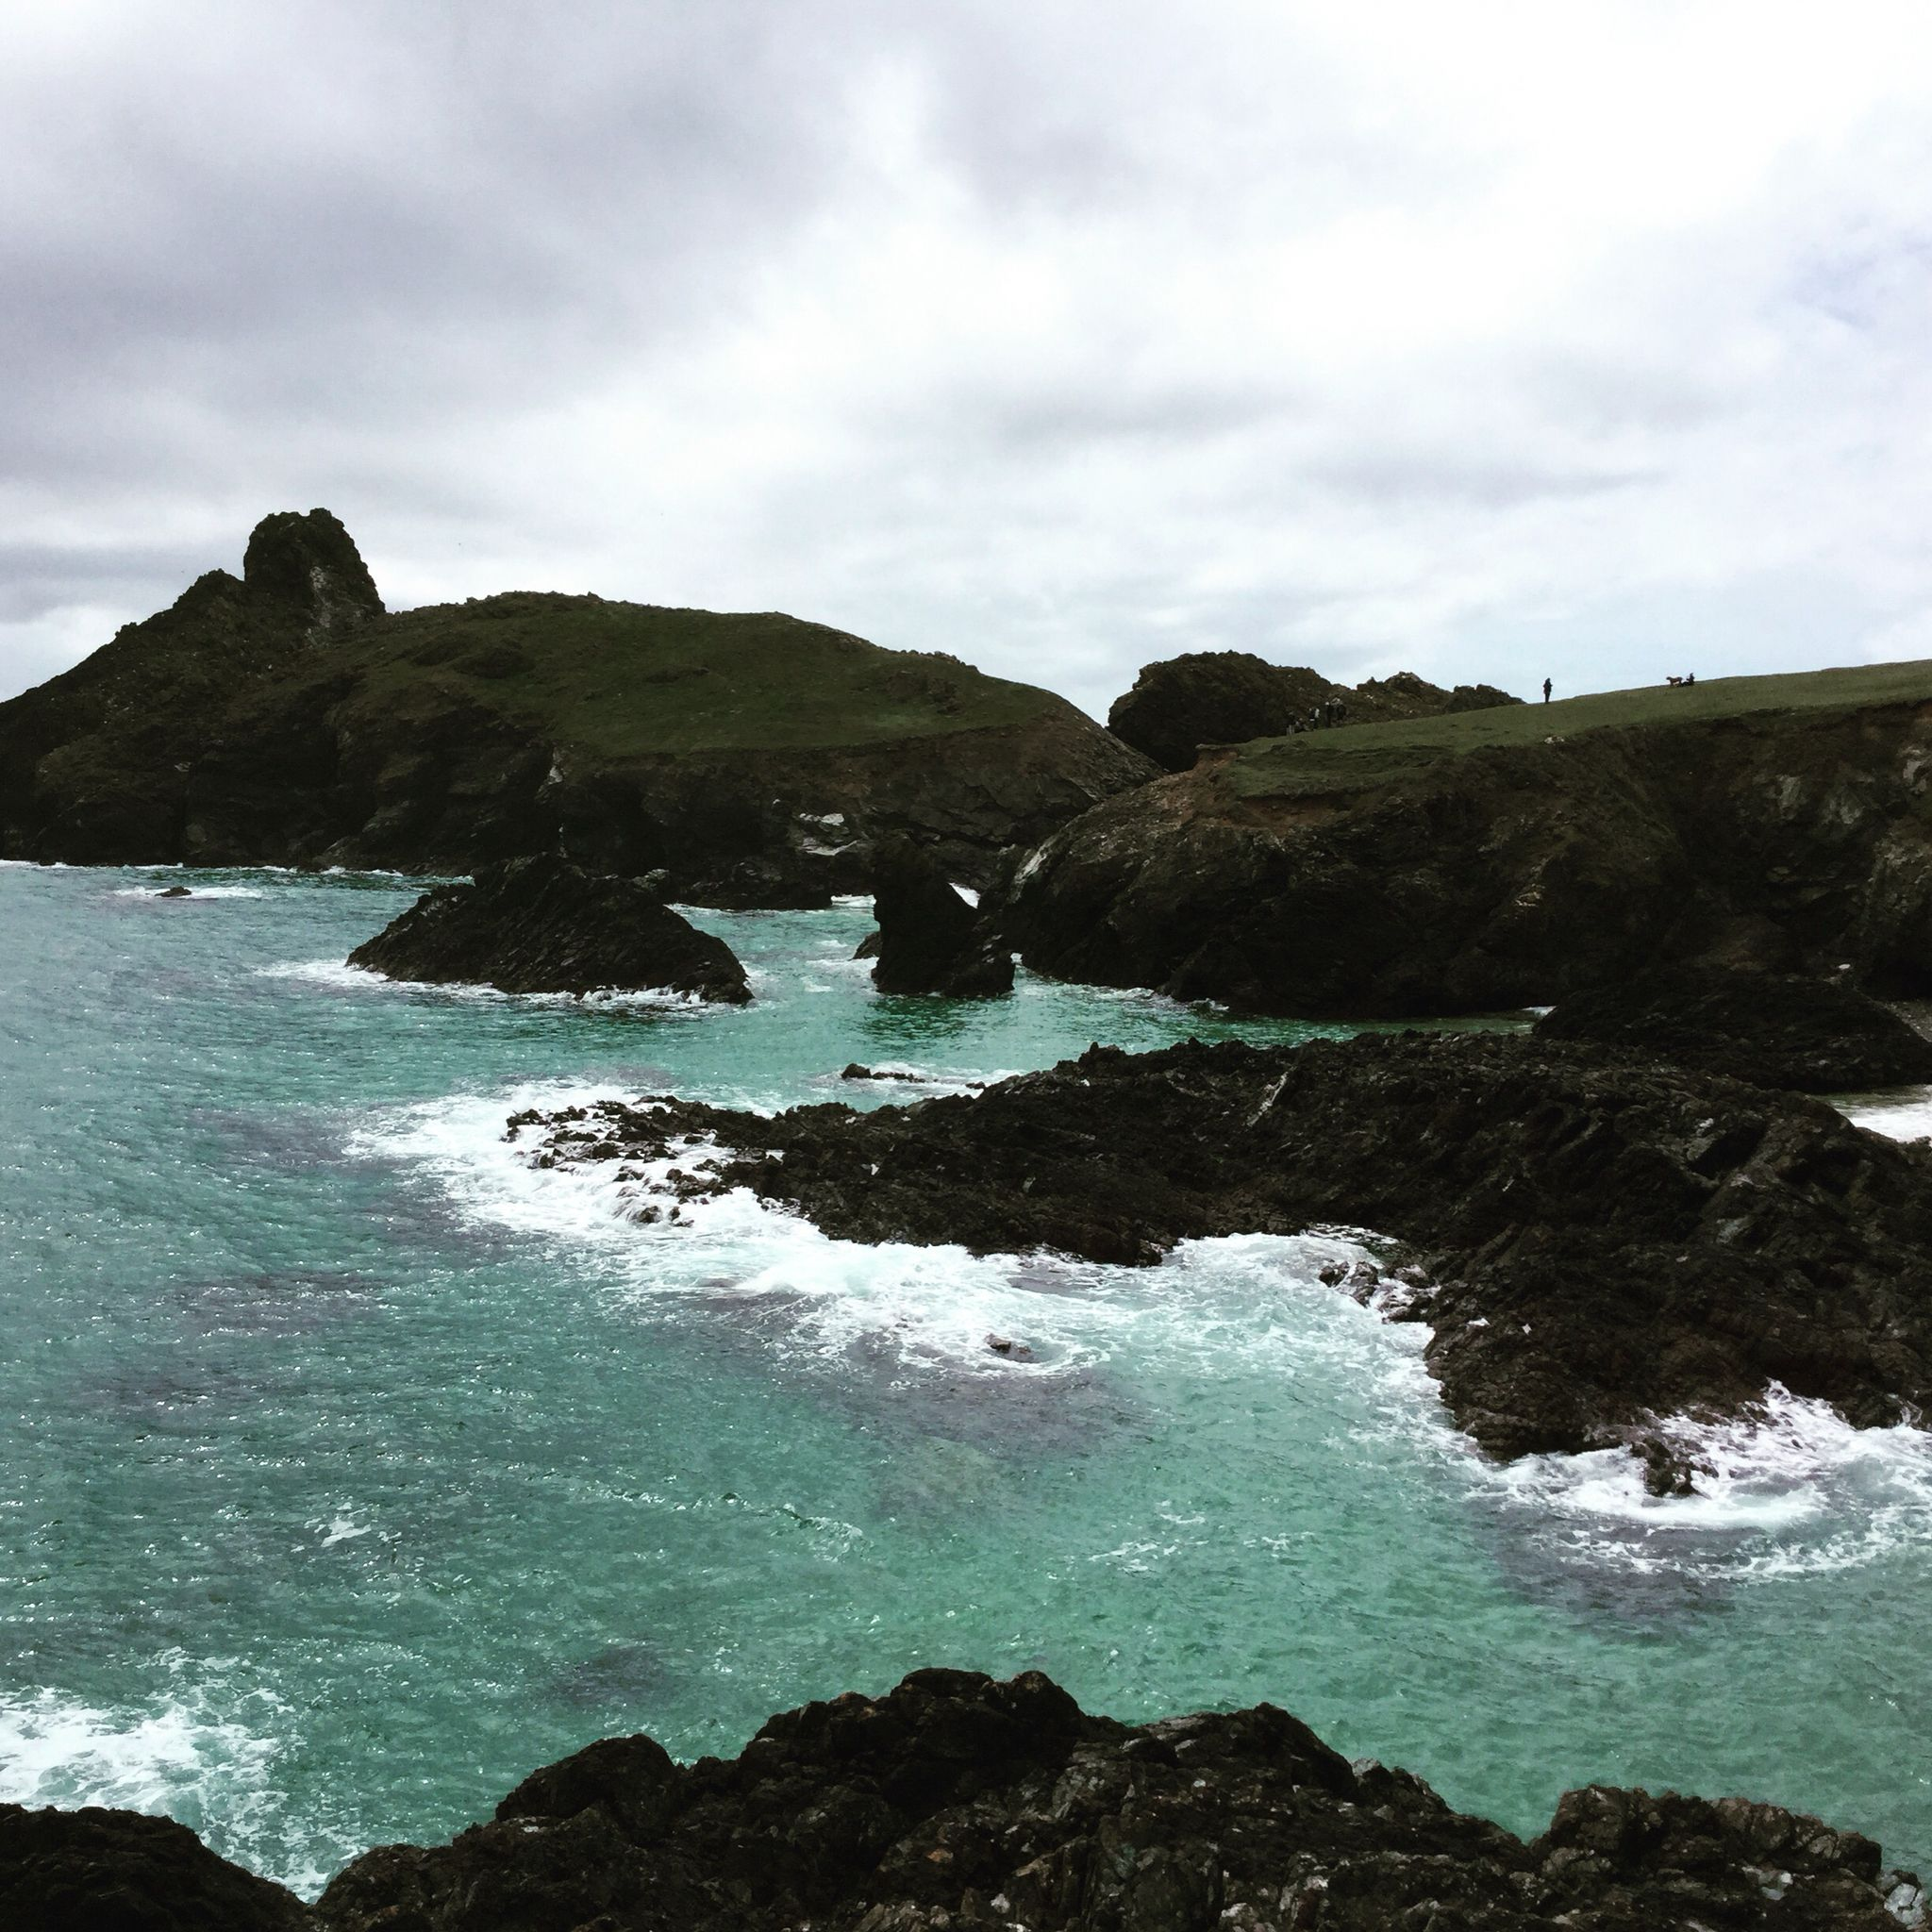 Kynance cove. Such a lovely place. Wish I was there now.